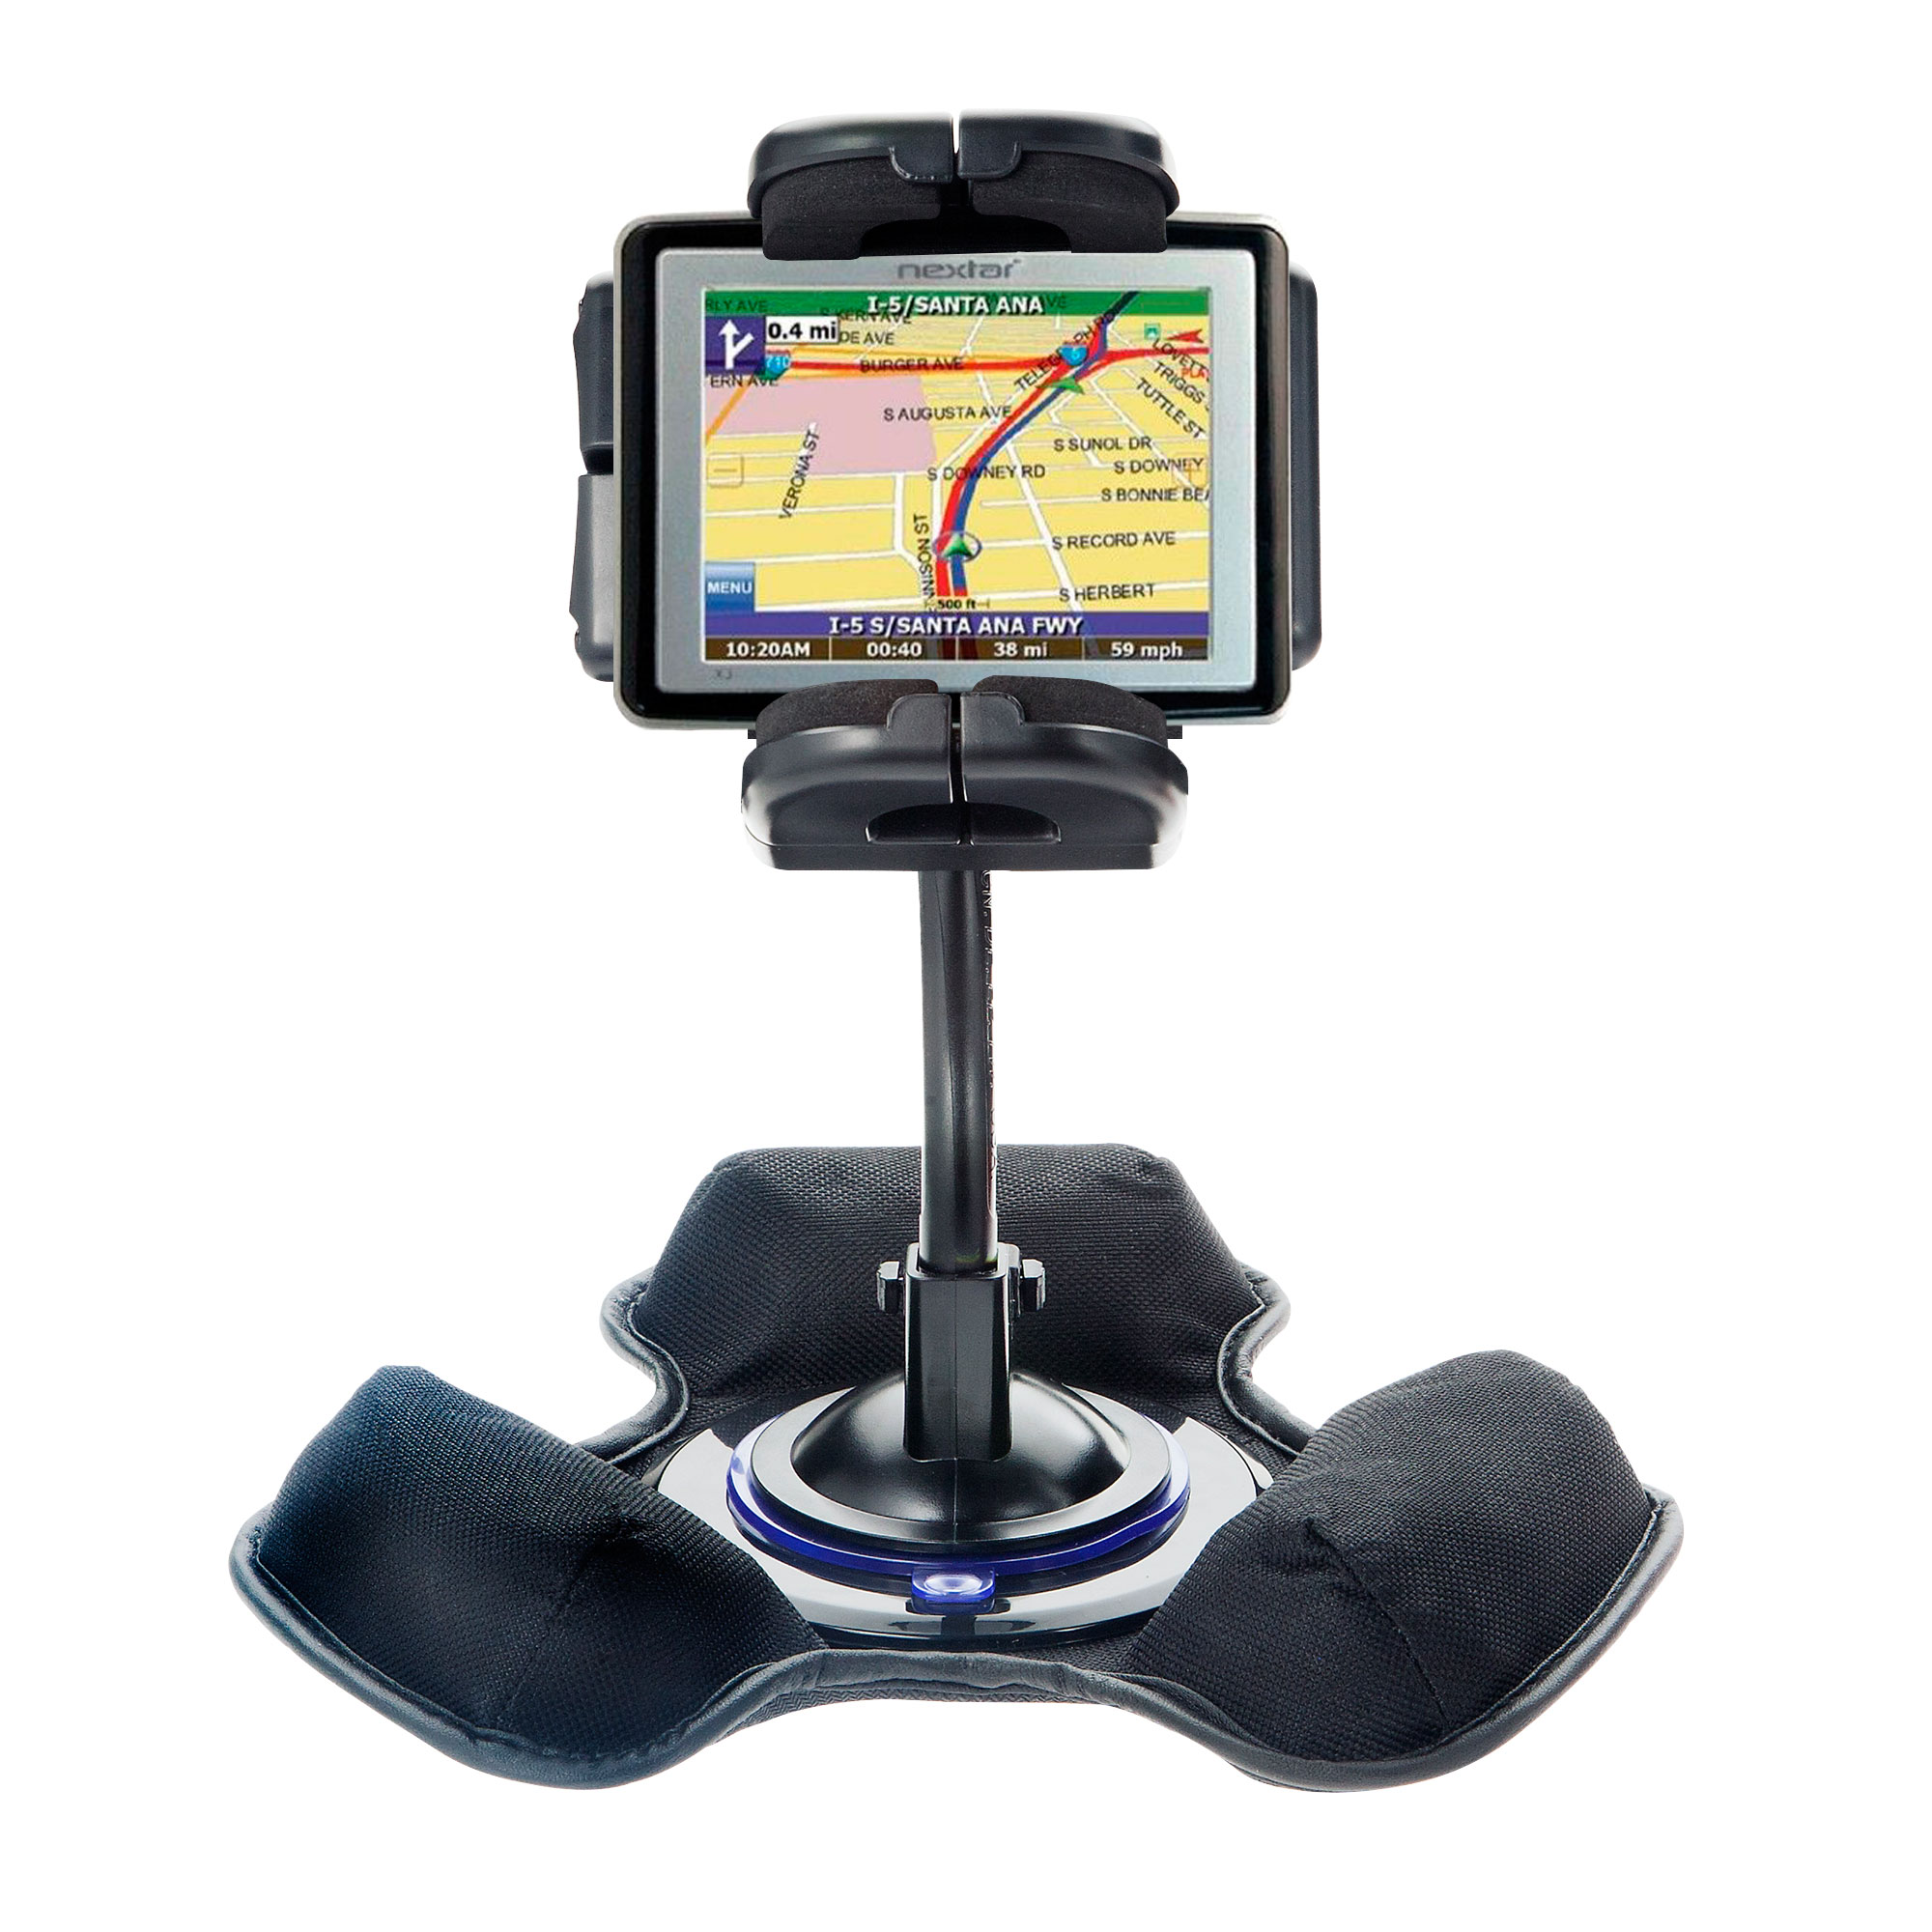 Dash and Windshield Holder compatible with the Nextar X3-T